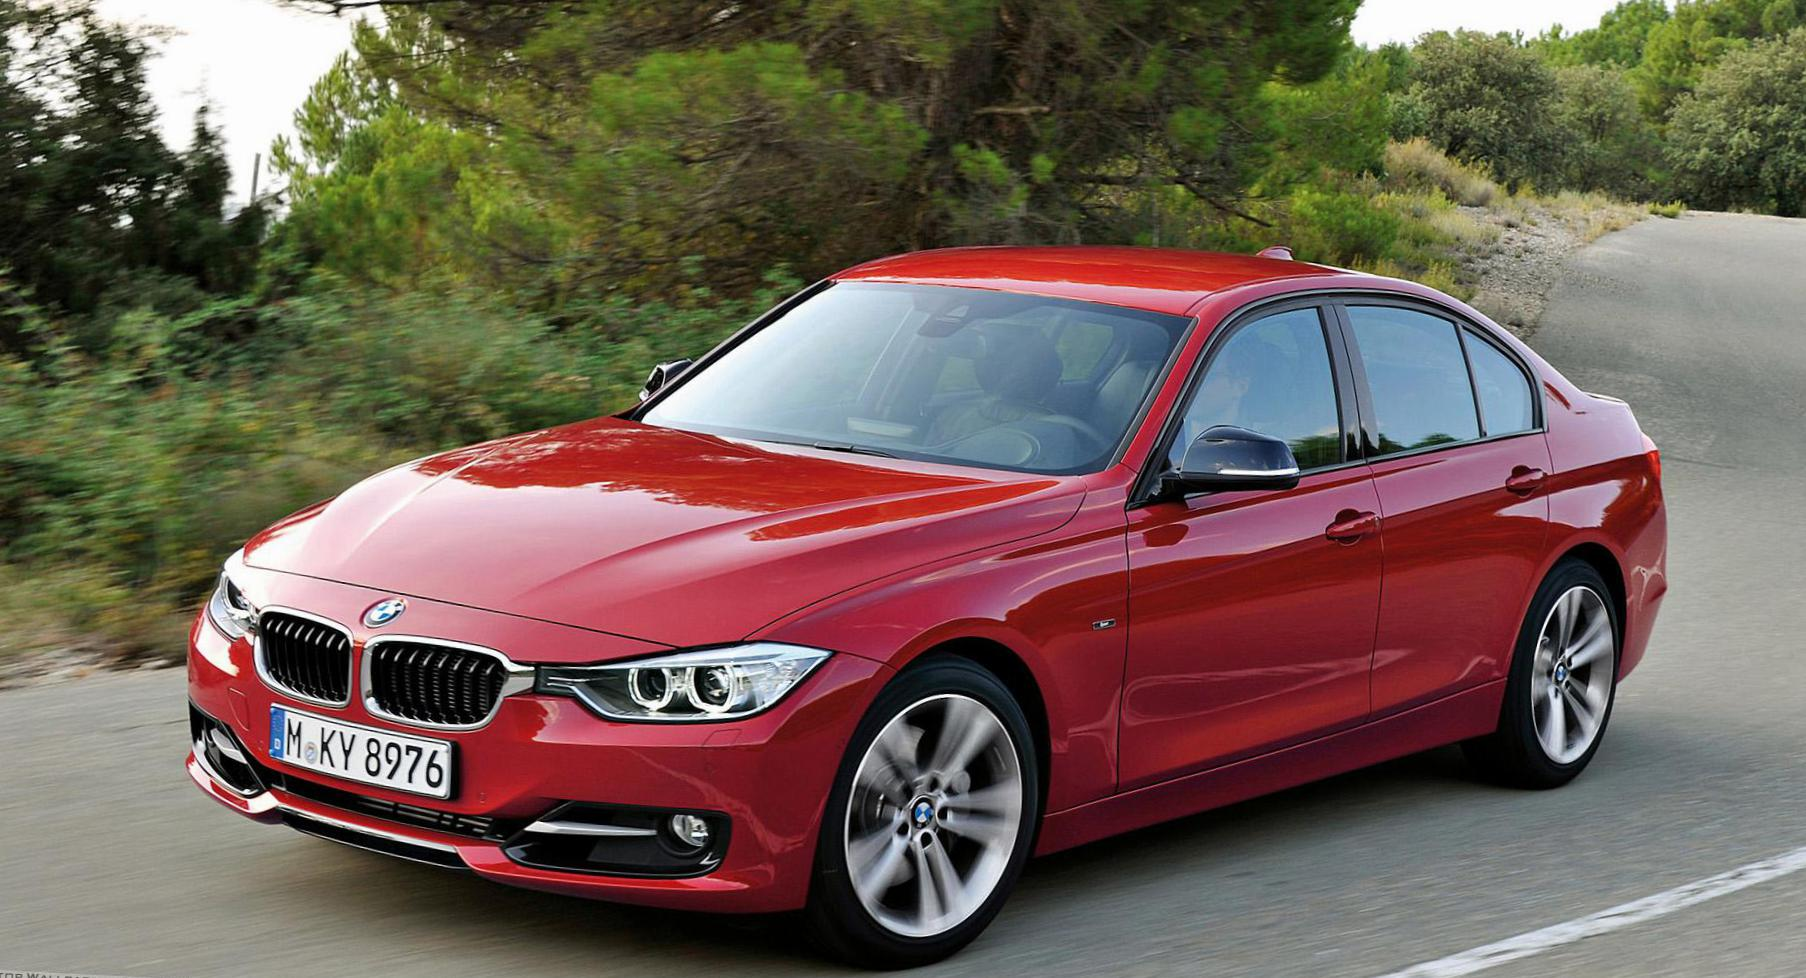 BMW 3 Series Sedan (F30) used 2011